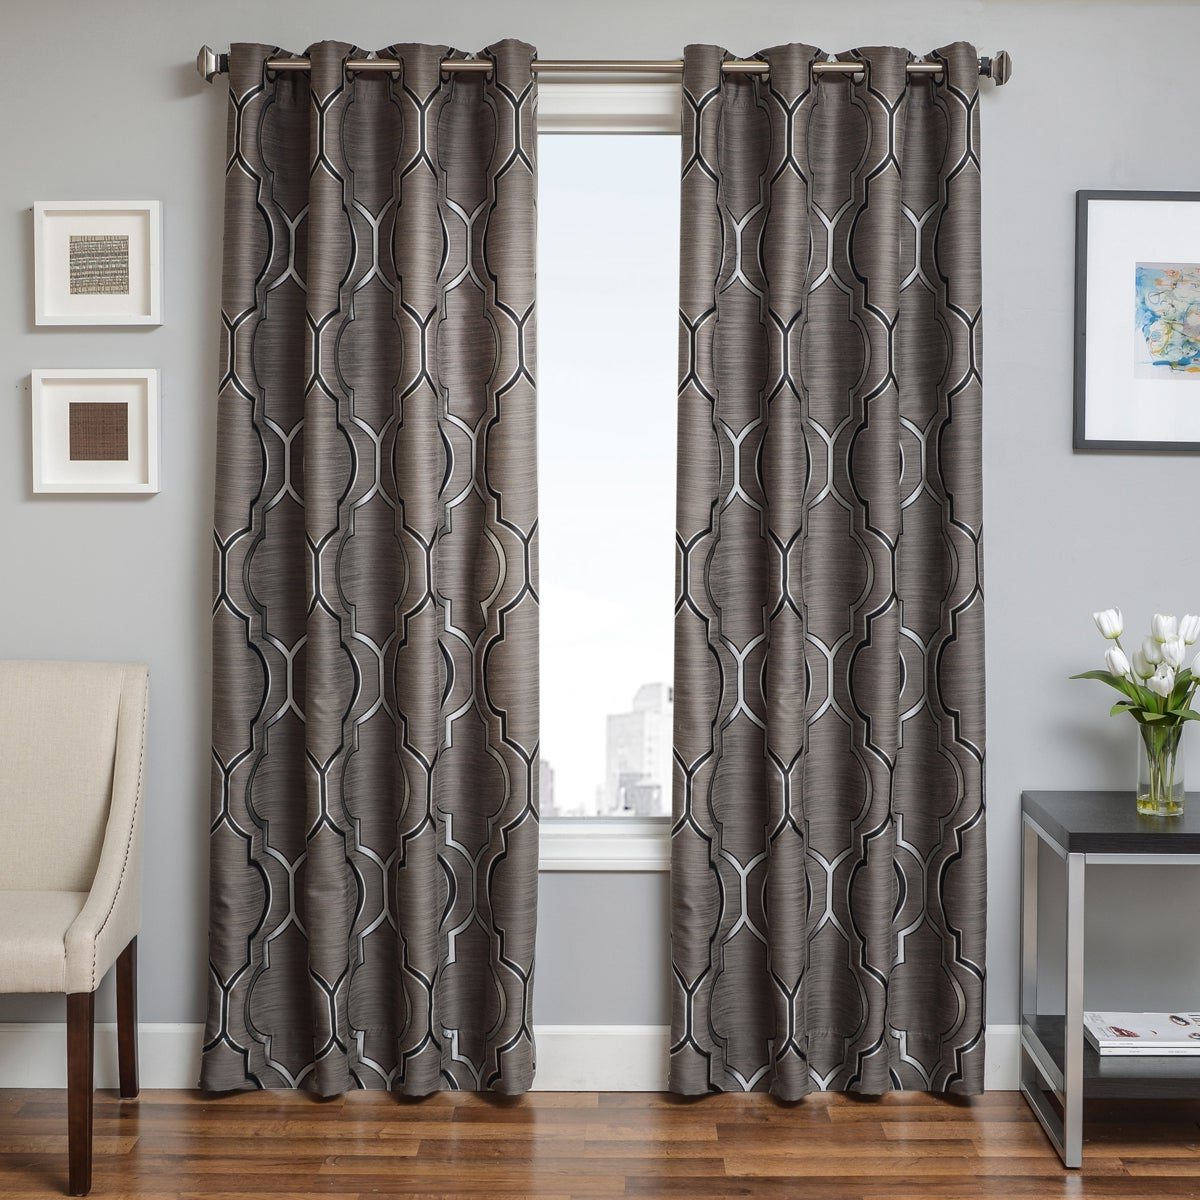 Widely Used Softline Trenton Grommet Top Curtain Panel With Regard To The Curated Nomad Duane Jacquard Grommet Top Curtain Panel Pairs (View 8 of 21)